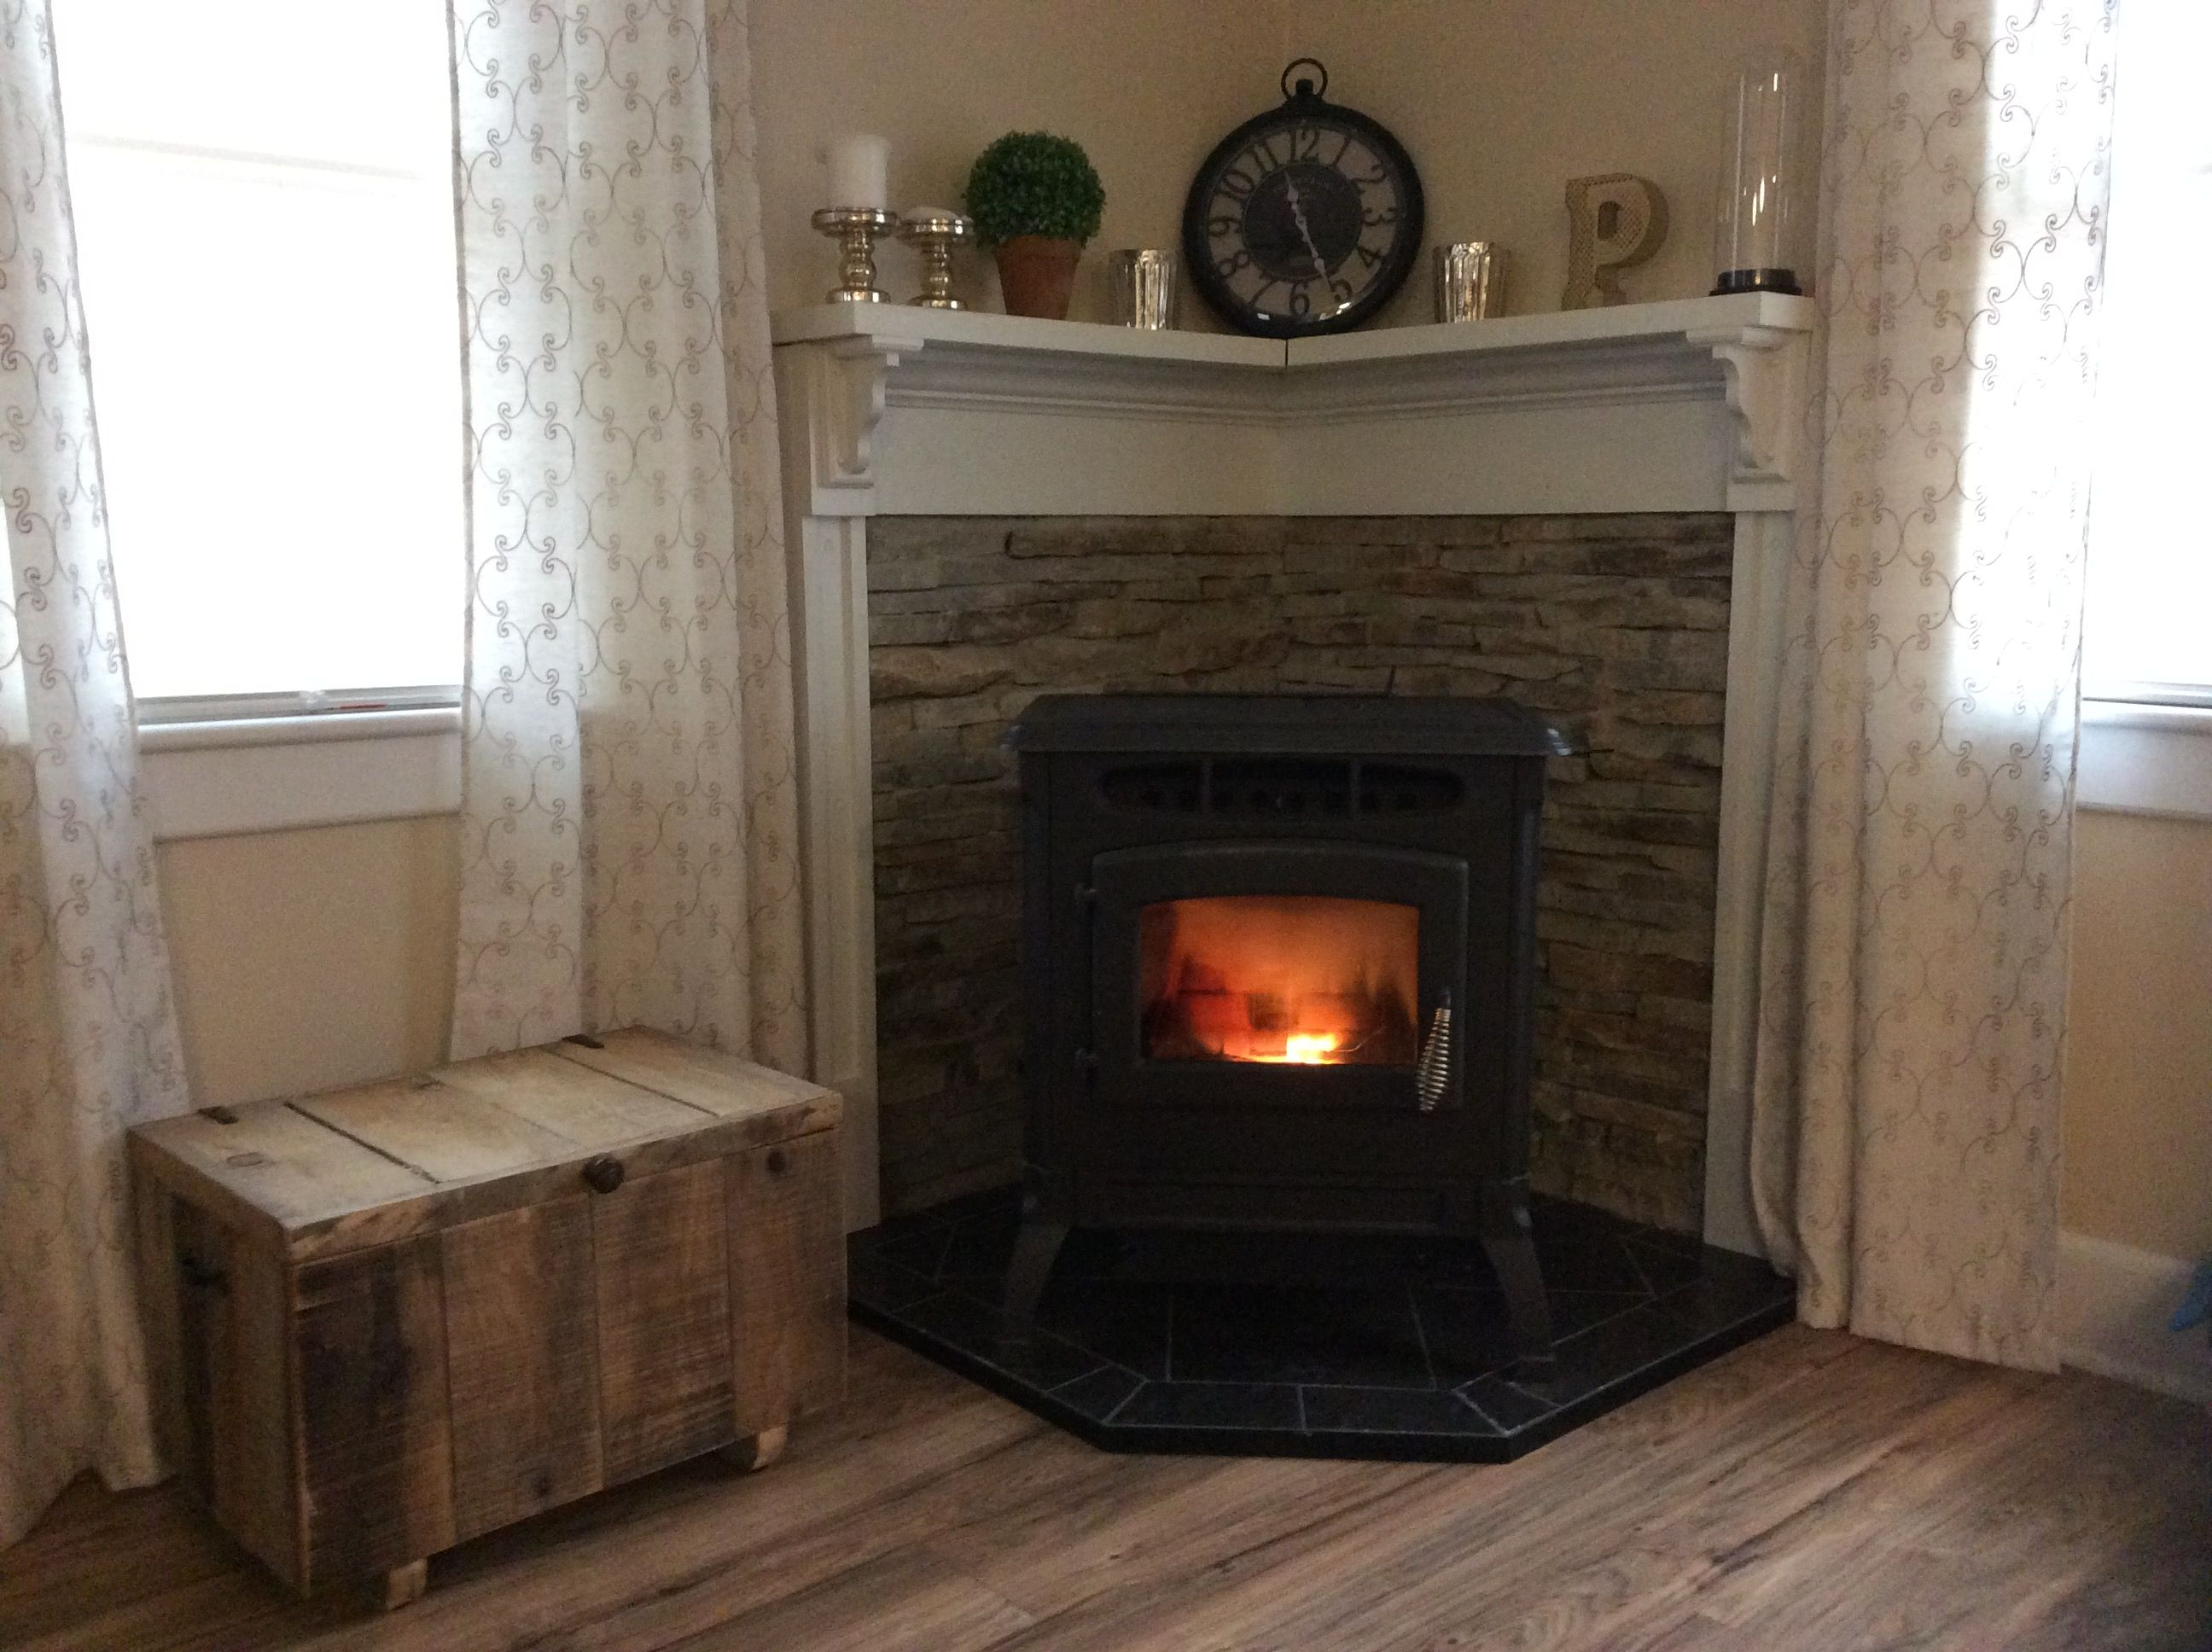 Wood stove surround ideas - Pellet Stove Corner Mantle Stone Wall Rustic Pallet Box For Pellets